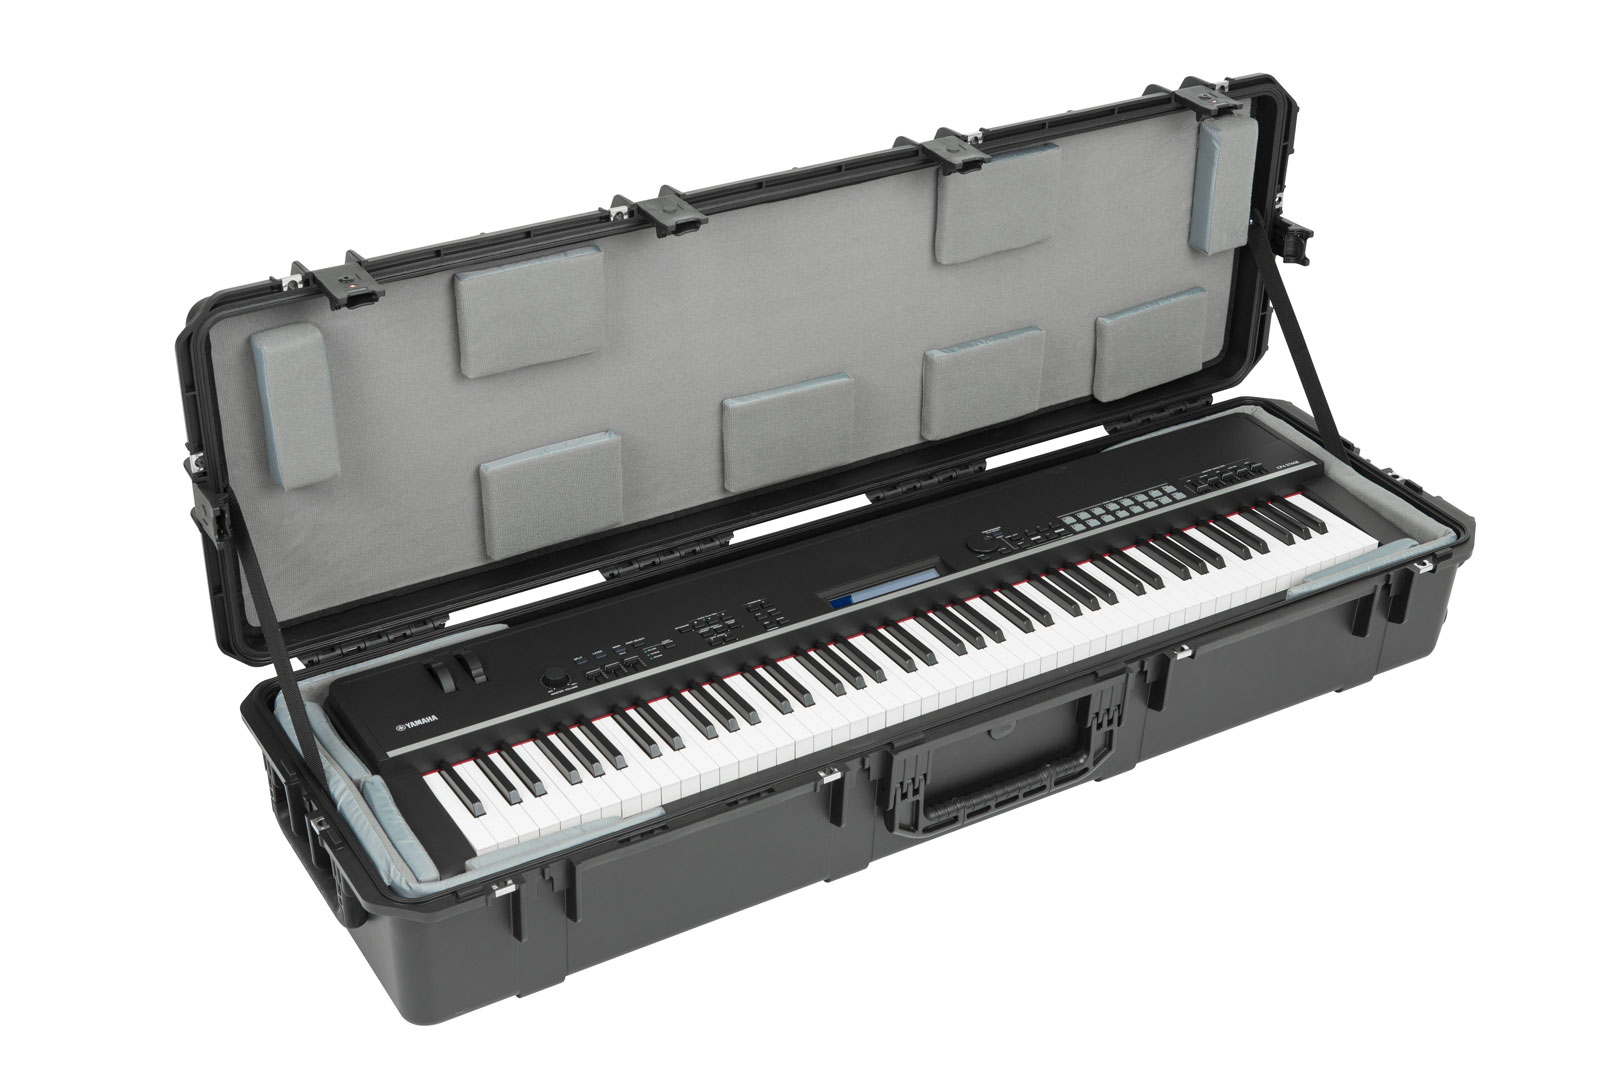 MUSIC KEYBOARD PRODUCTS 88 NOTE CASES 3I-5616-TKBD BLACK